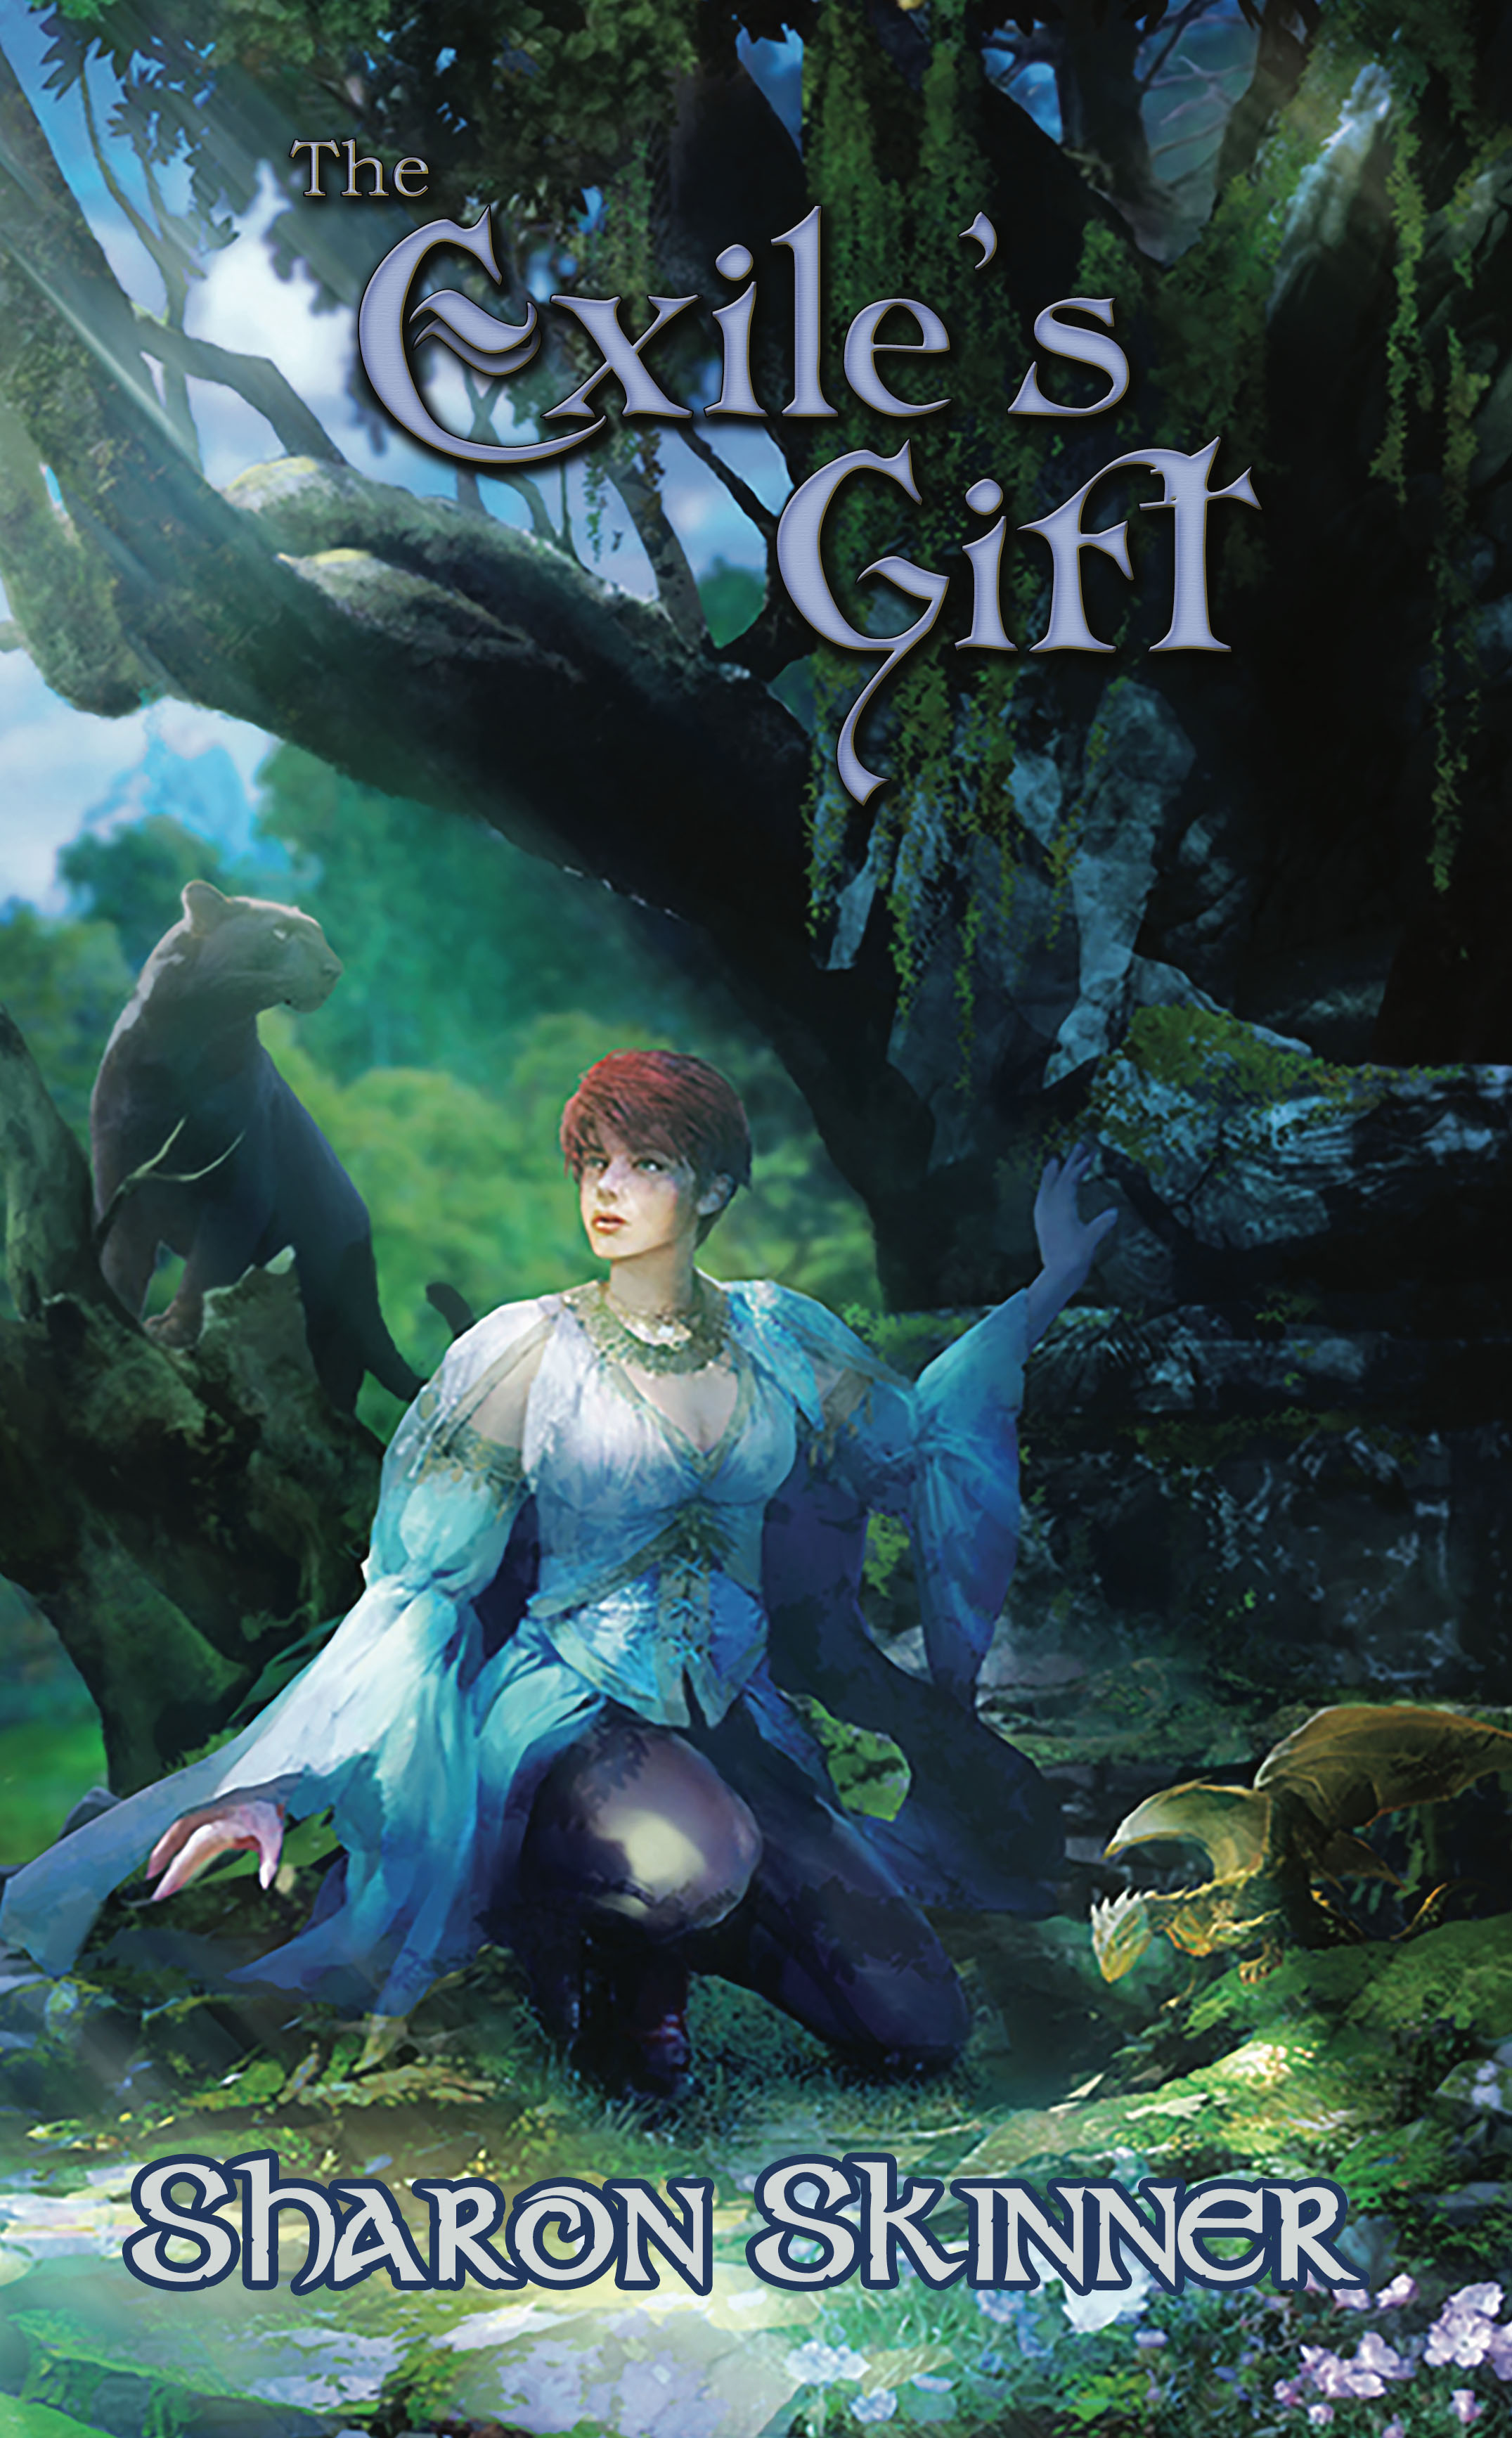 The Exile's Gift Author:Sharon Skinner Publisher Name: Brick Cave Media Date of Publication: August 6, 2019